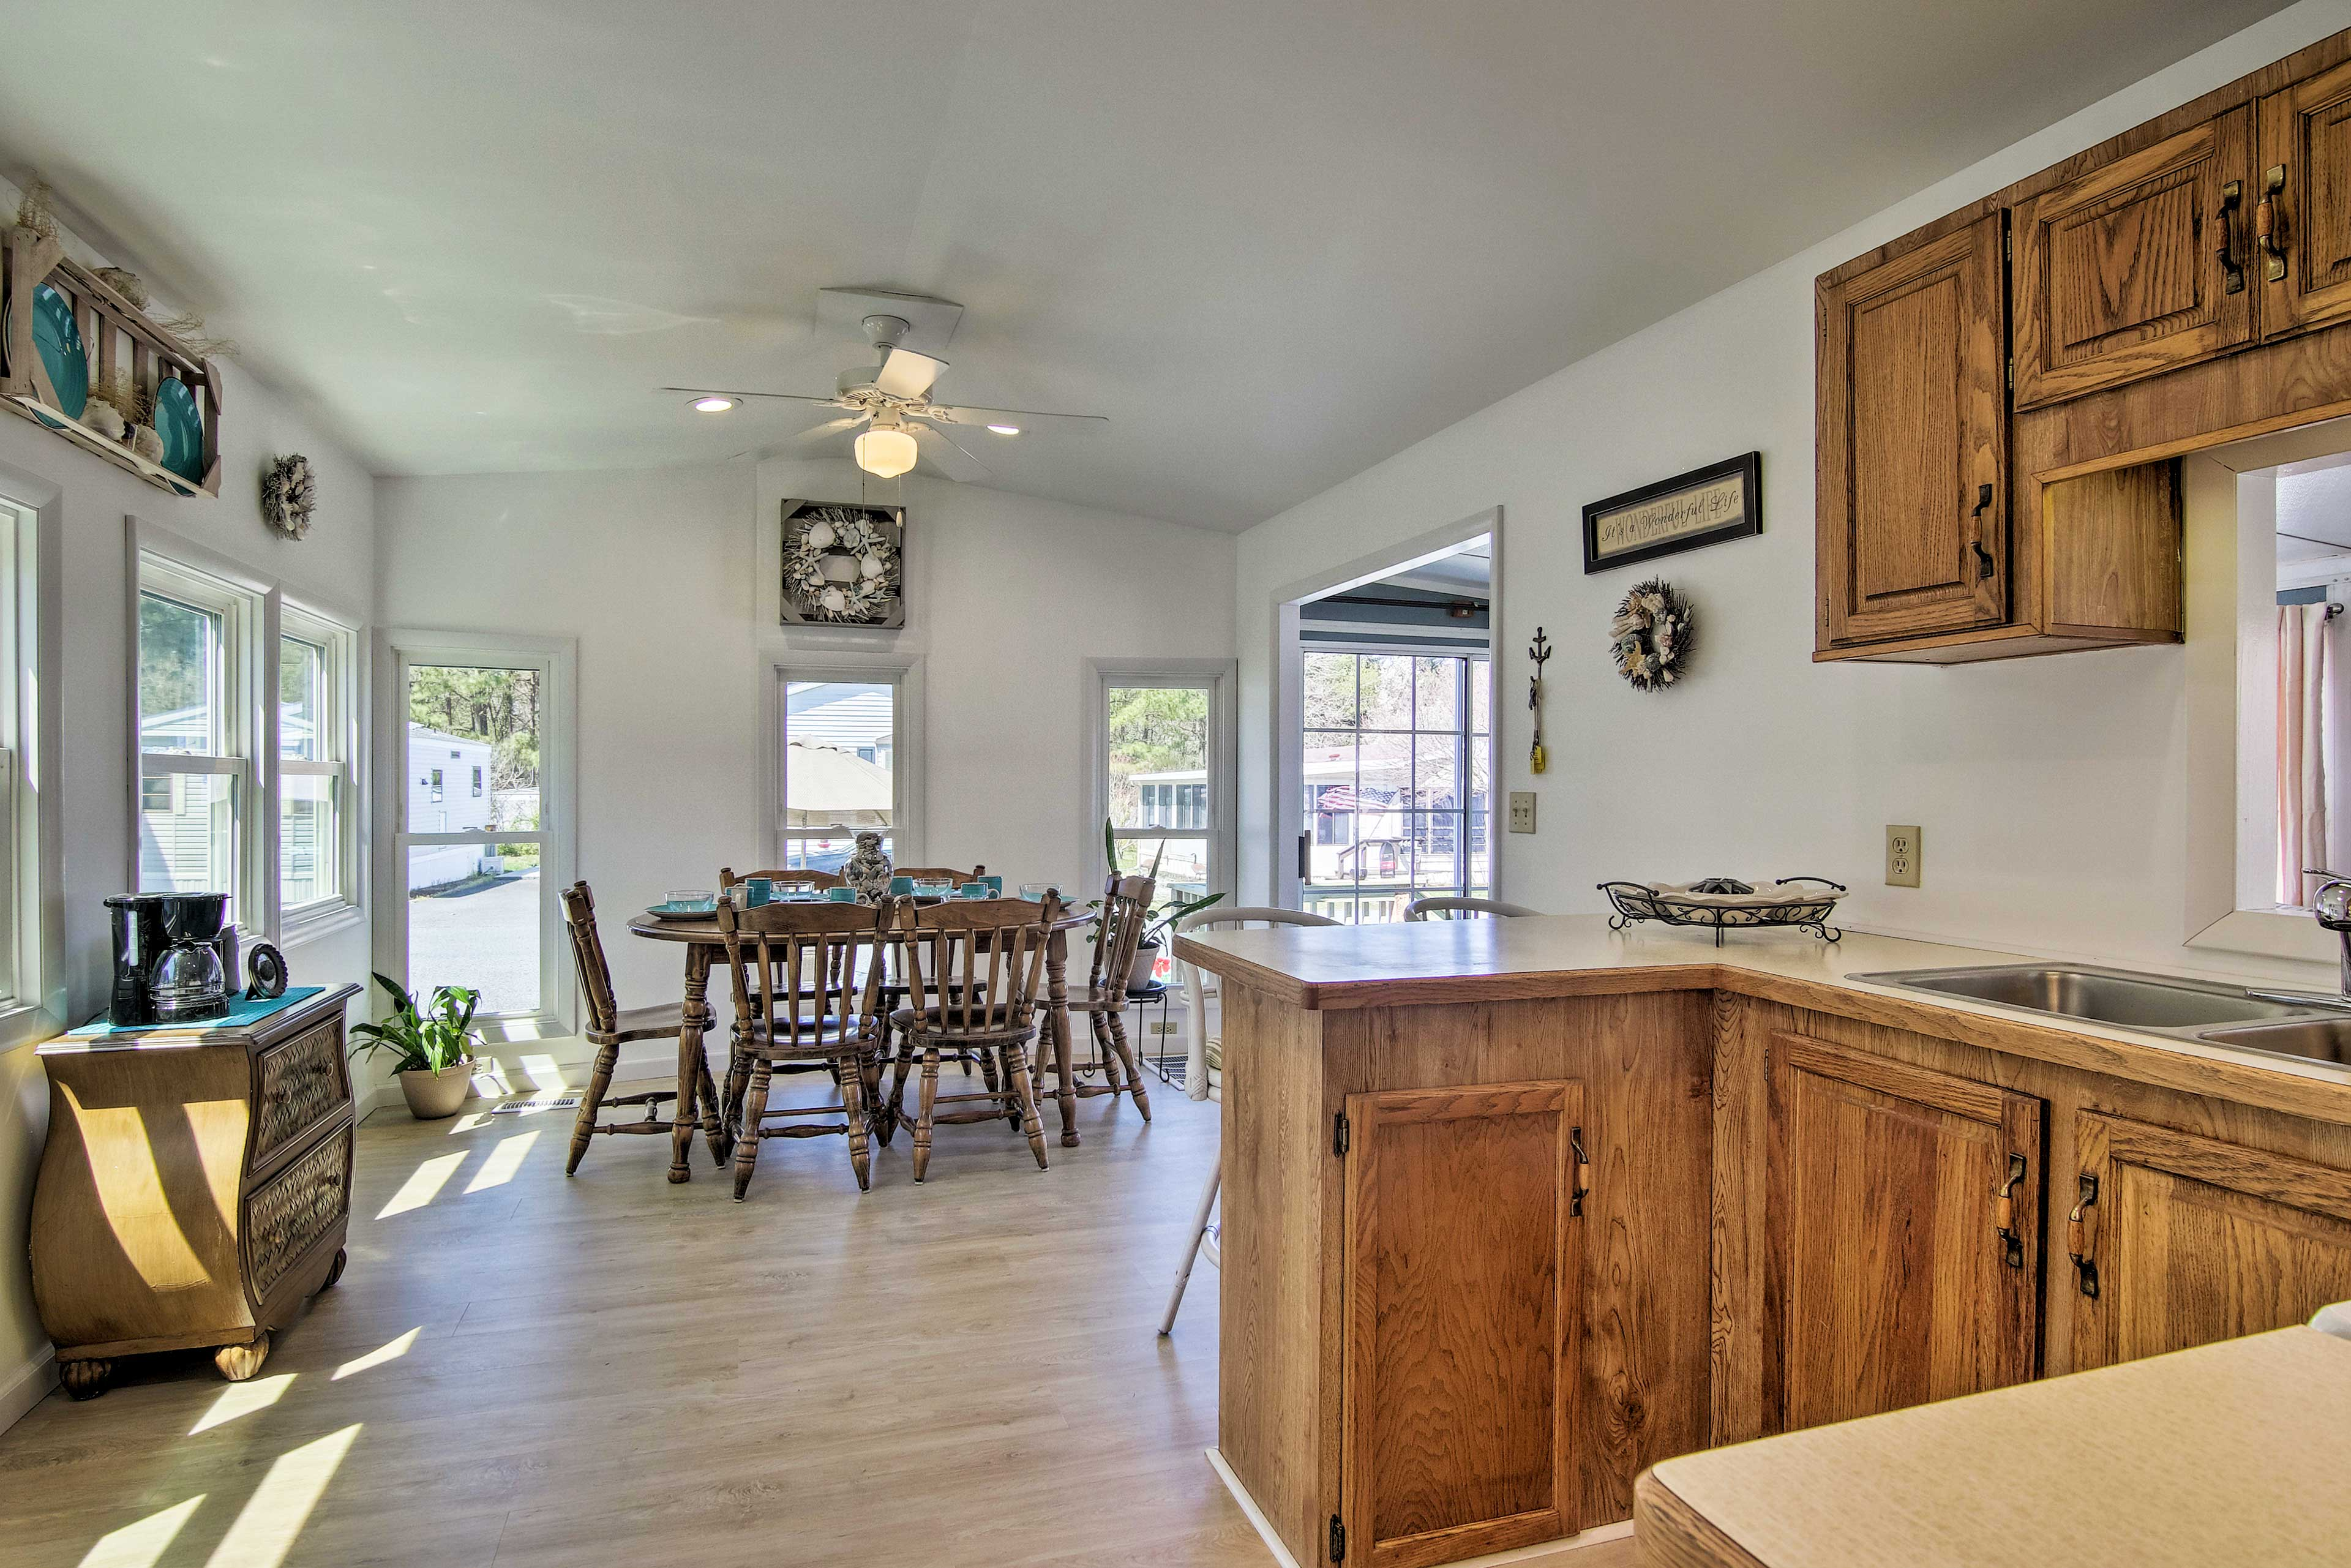 The kitchen is well equipped with a coffee station & ample cookware.